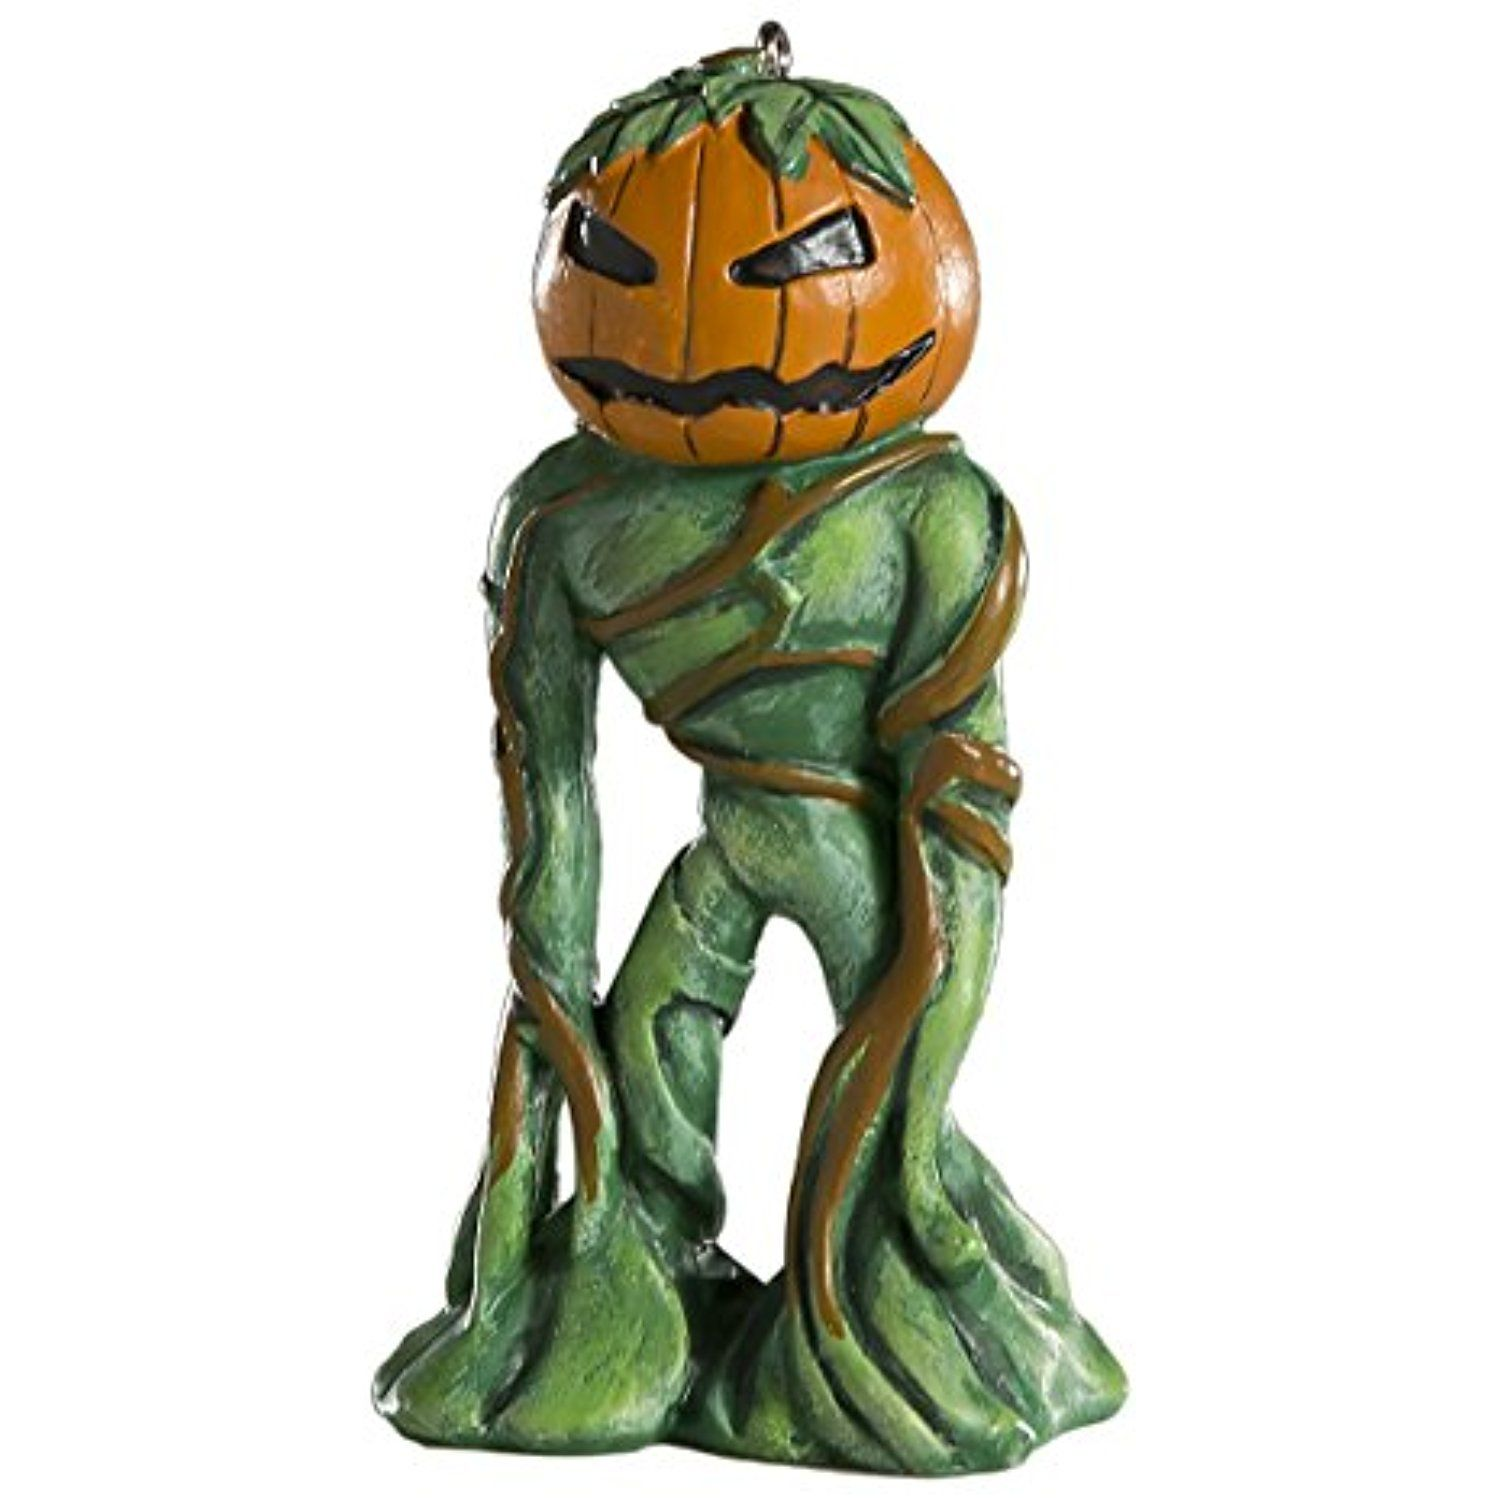 Pumpkin Man Horror Ornament Scary Prop and Decoration